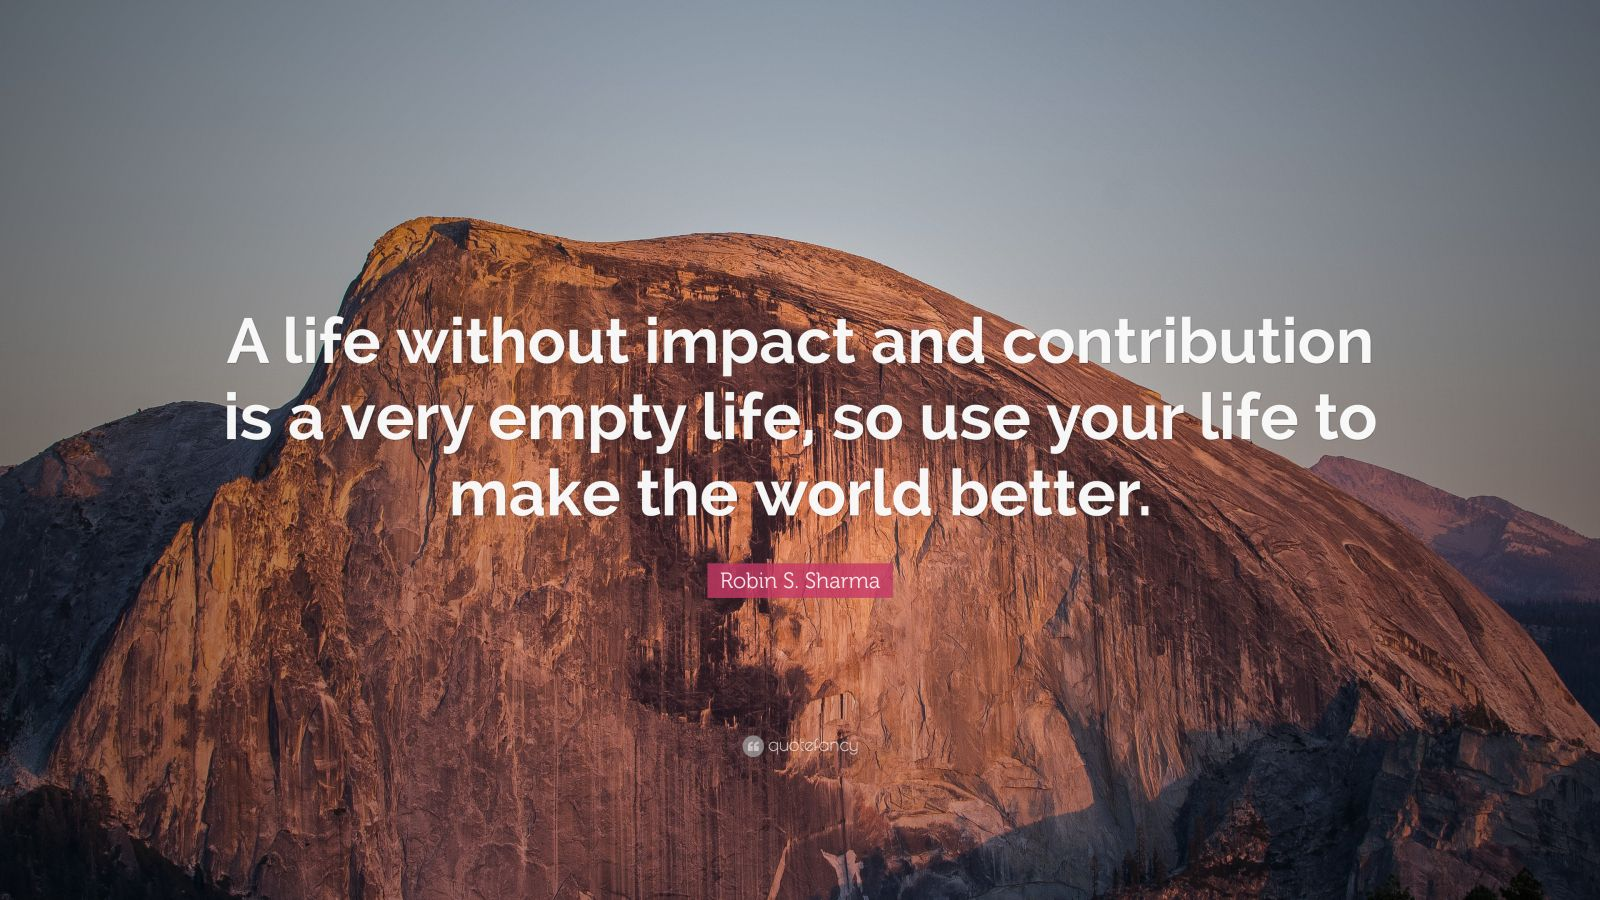 """Robin S. Sharma Quote: """"A life without impact and contribution is a very empty life, so use your life to make the world better."""""""